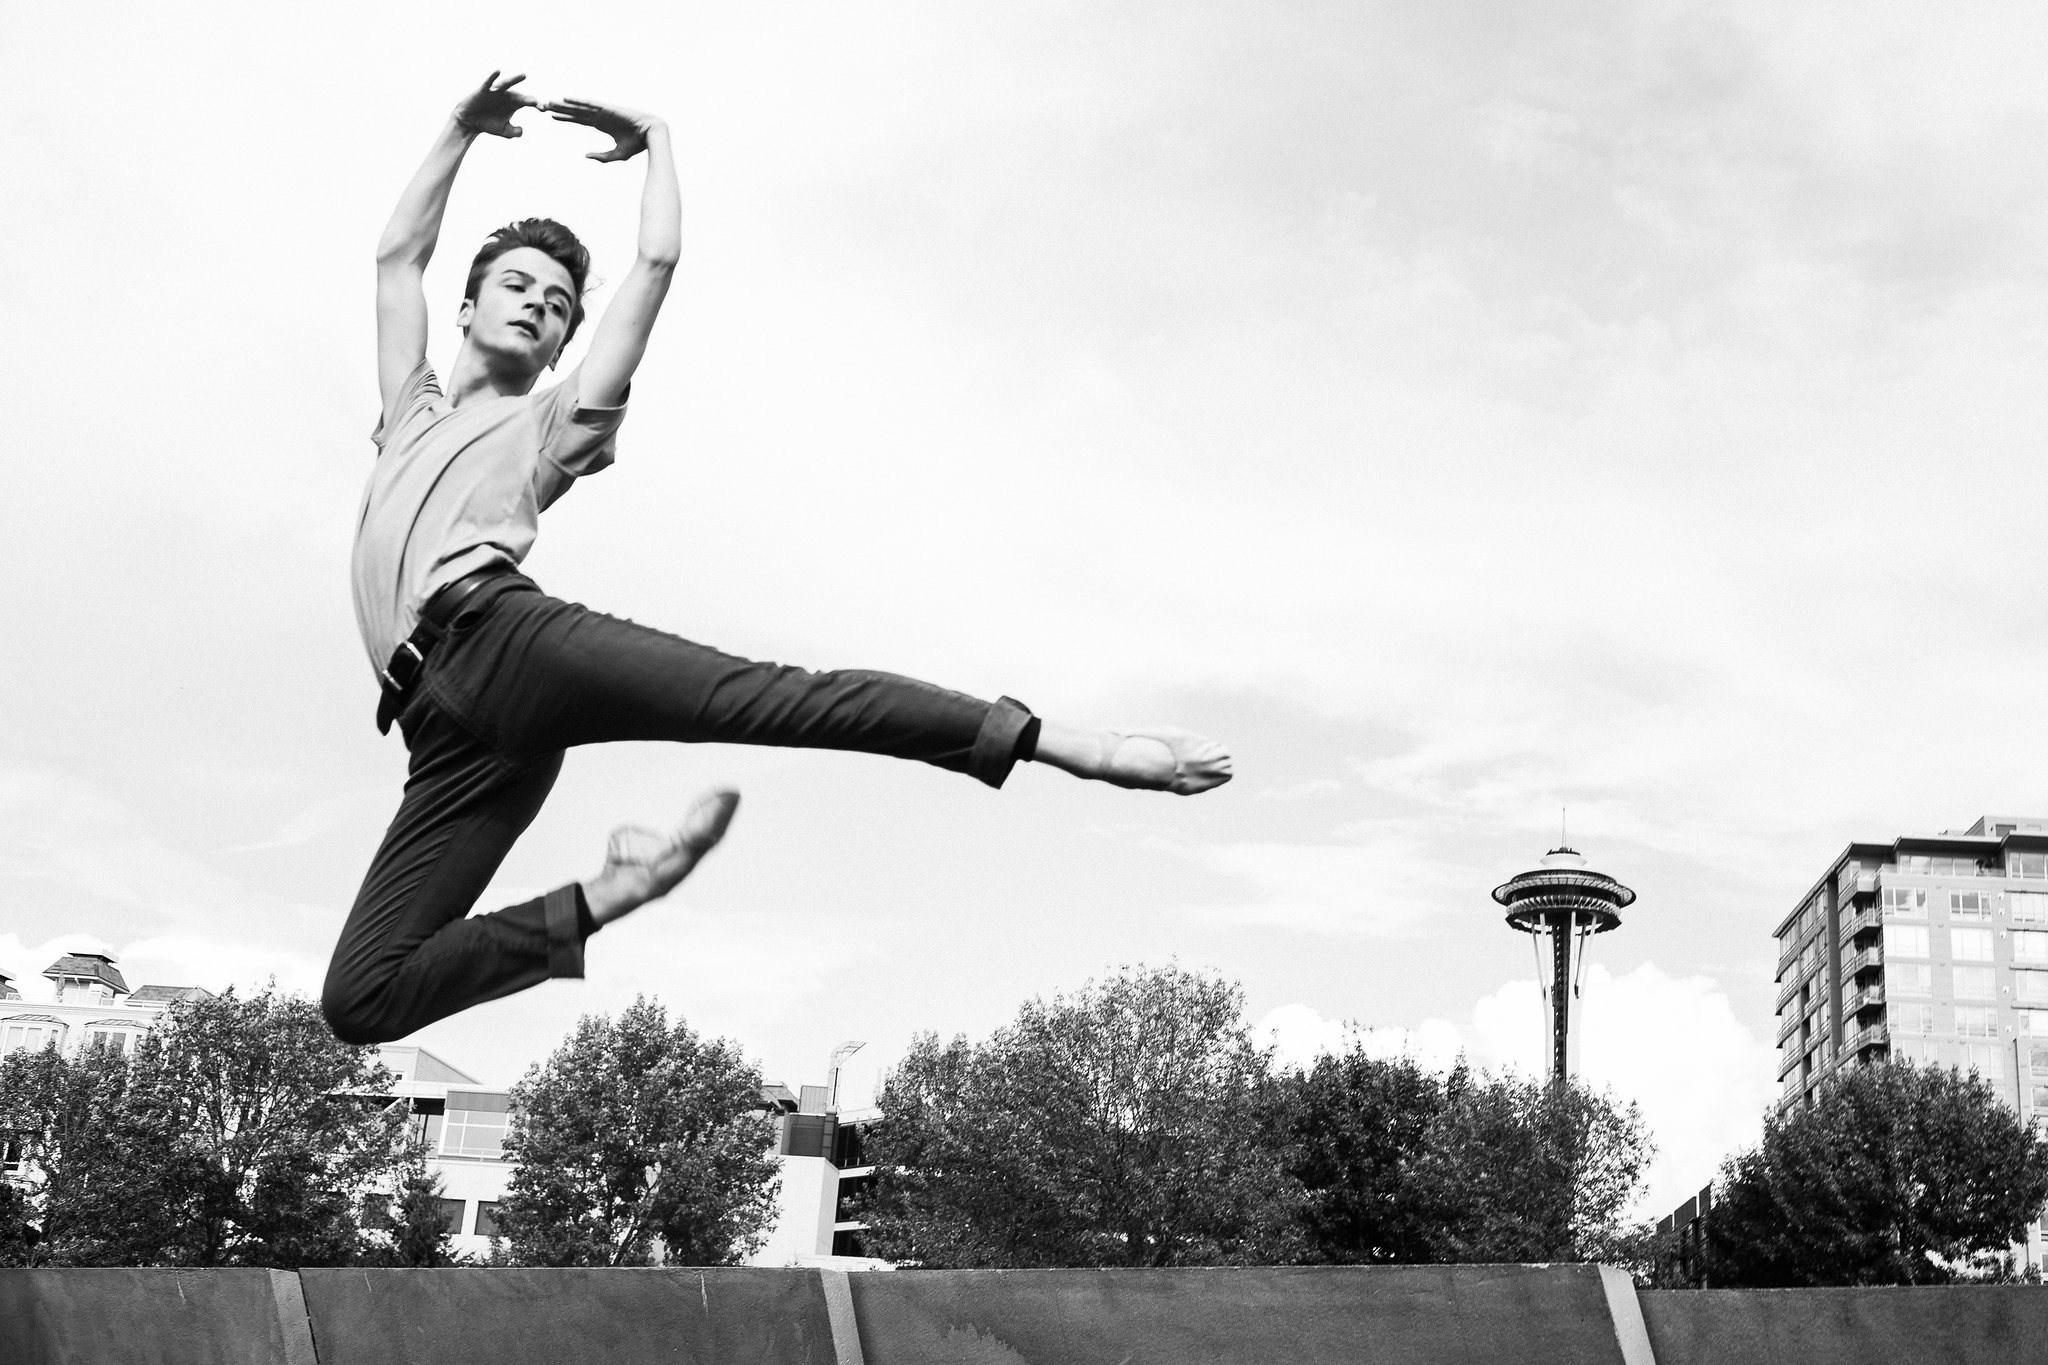 2017_09_18_keegan_seattle_downtown_dance_ballet_shoot_2-1448-Copy1.jpg